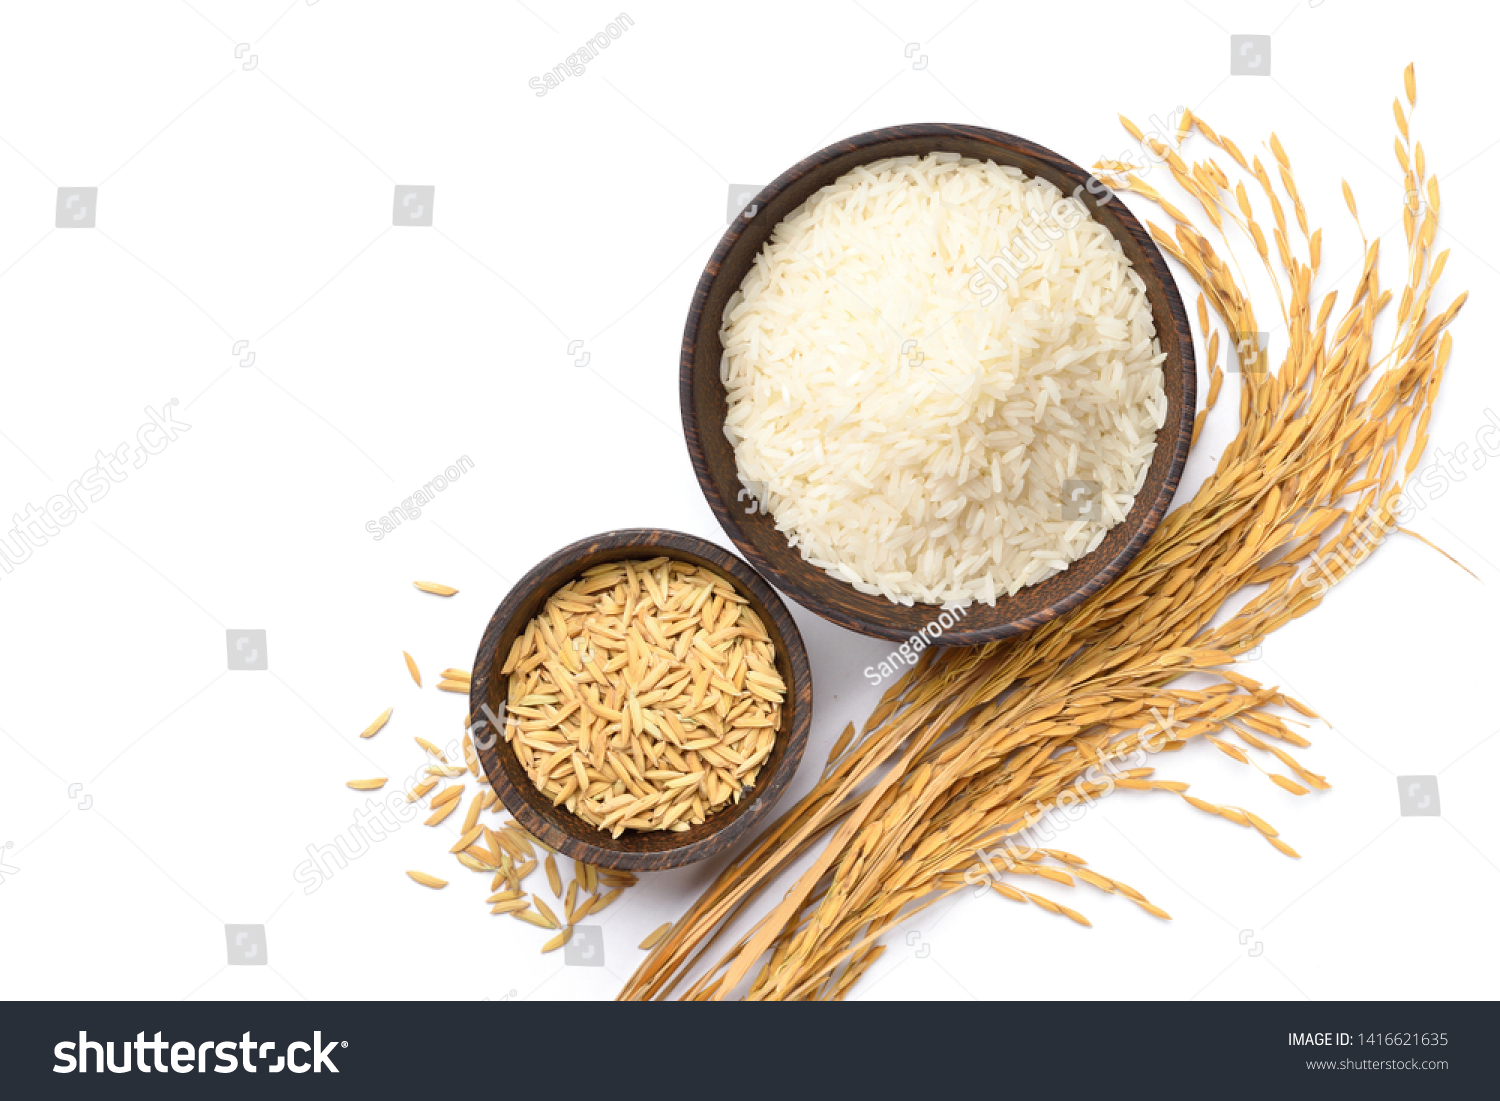 Top view of white rice and paddy rice in wooden bowl with rice ear isolated on white background. #1416621635